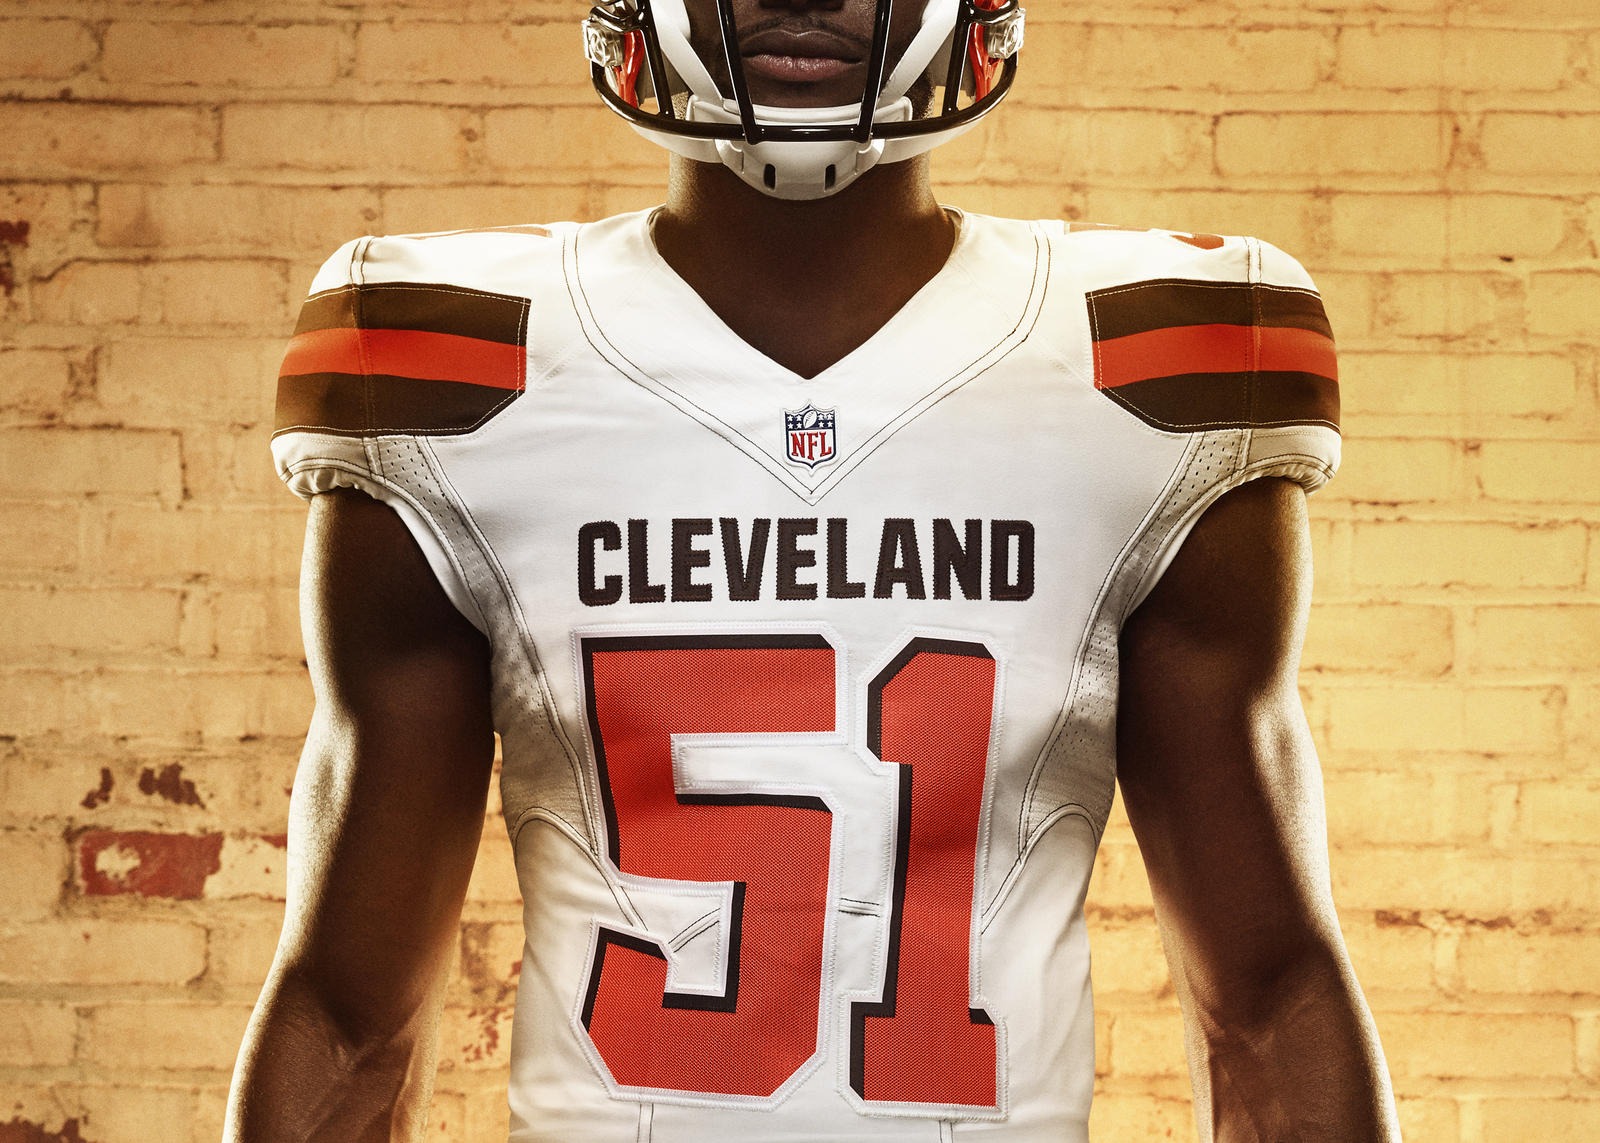 Nike_Cleveland_Detail16x9_Front_Away_A